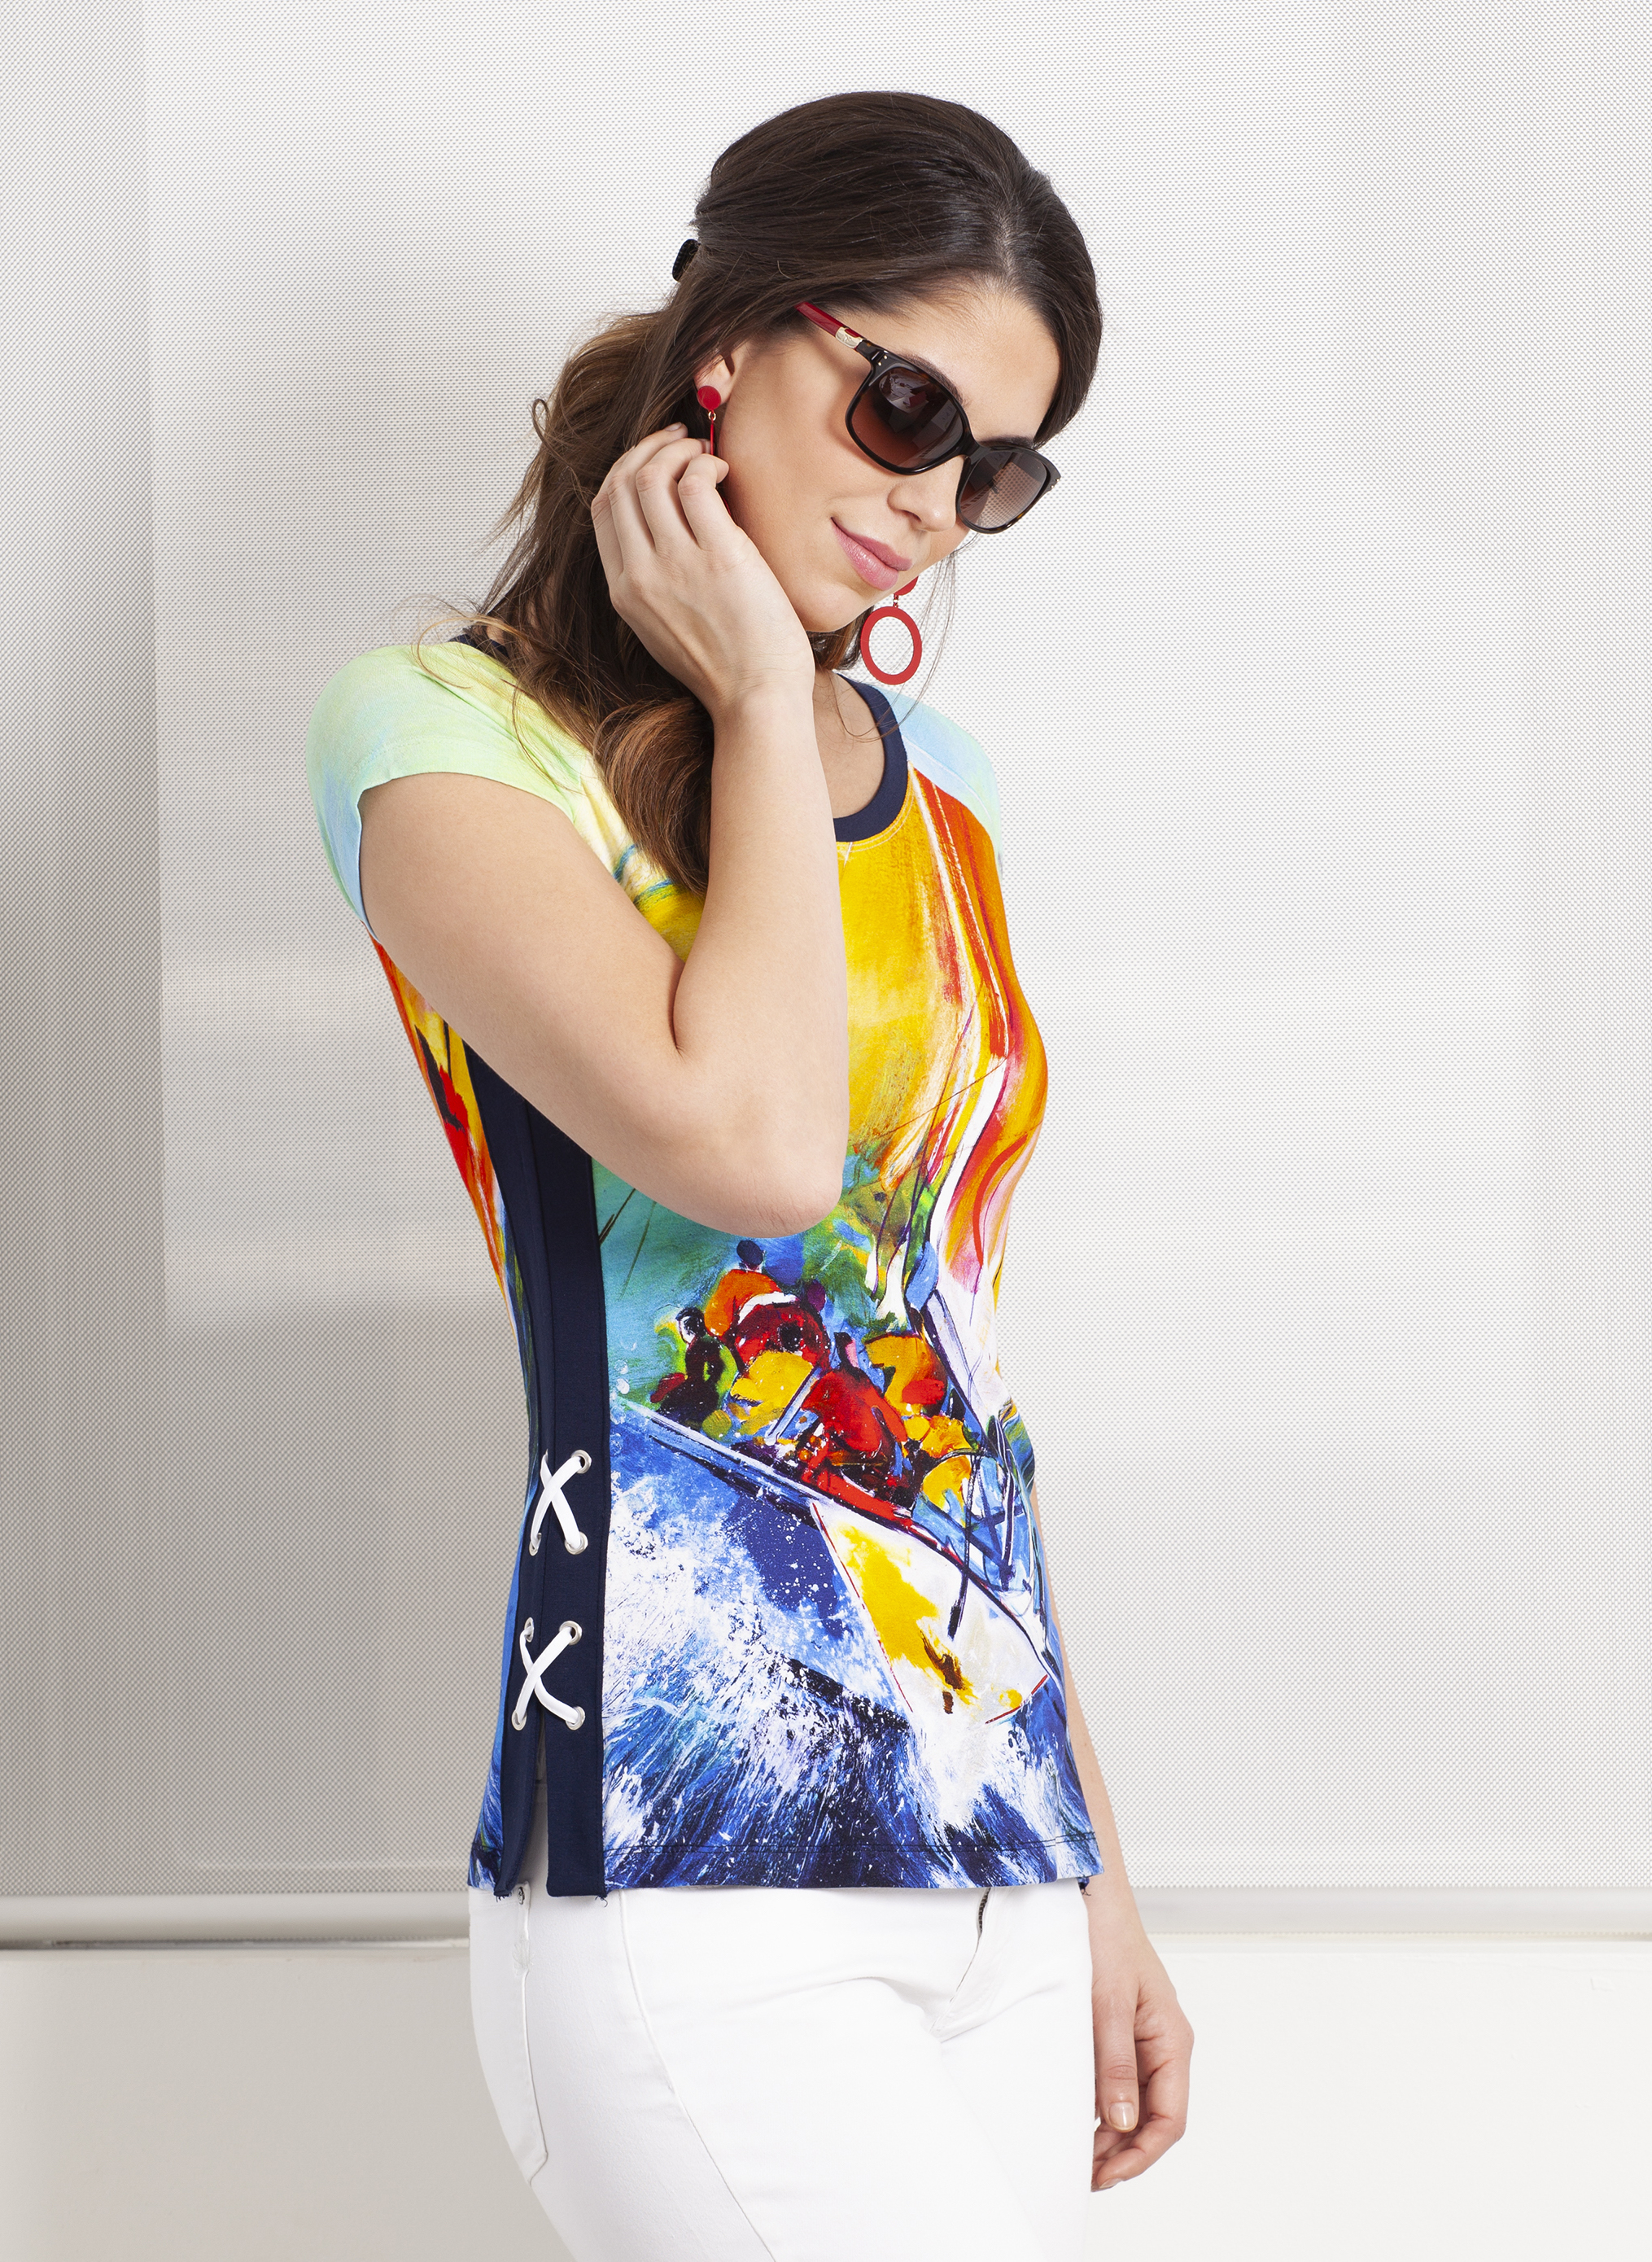 Dolcezza Simply Art: The Grand Depart Criss Cross Side Art Top SOLD OUT DOLCEZZA_SIMPLY_ART_19772